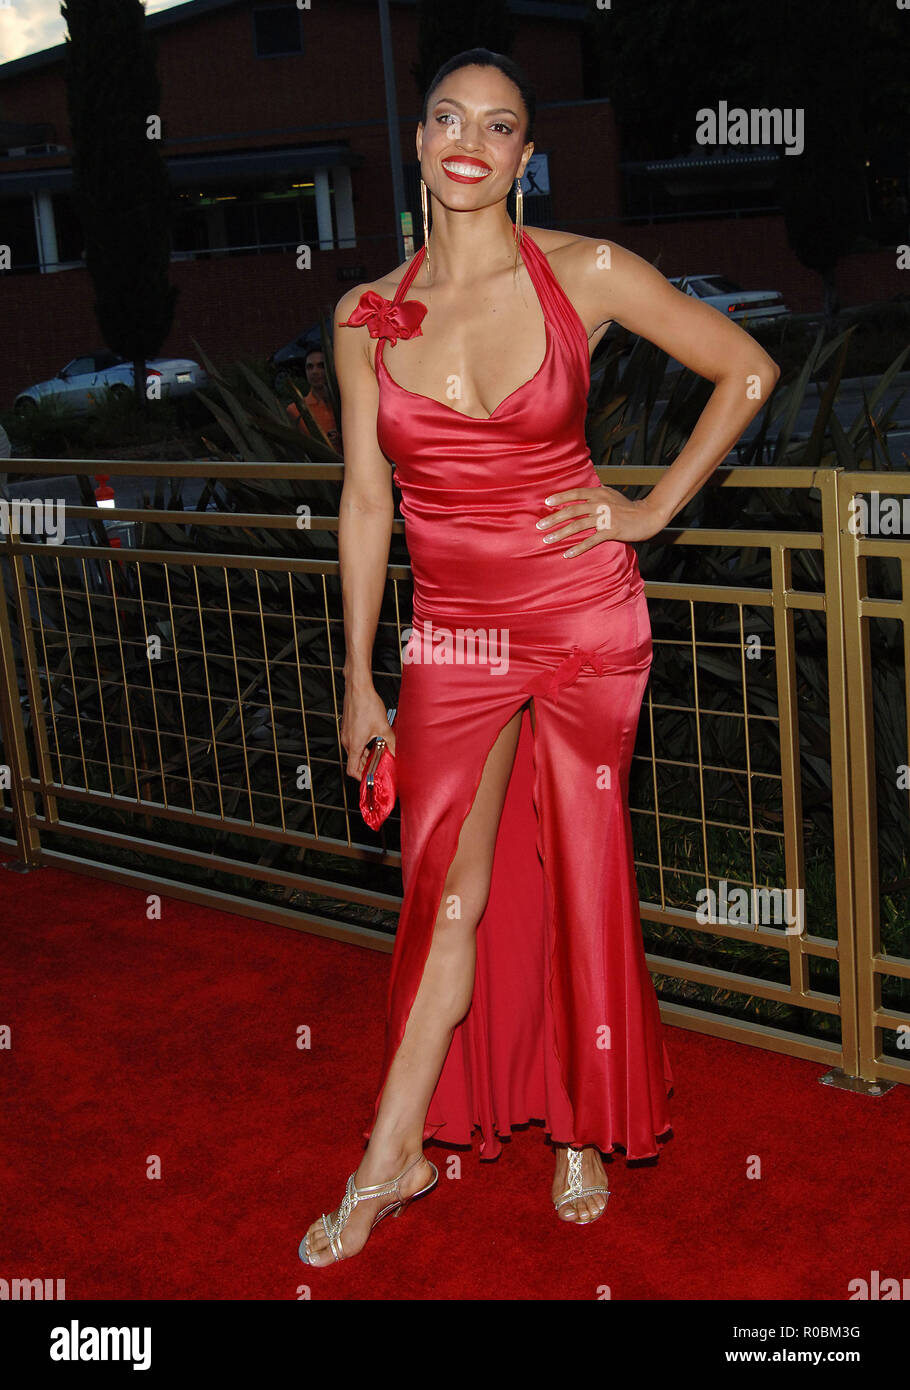 Naja Hill Scarlet Serie Tv Premiere At The Pacific Design Center In Los Angeles Full Length Eye Contact Smilehillnaja 20 Red Carpet Event Vertical Usa Film Industry Celebrities Photography Bestof Arts